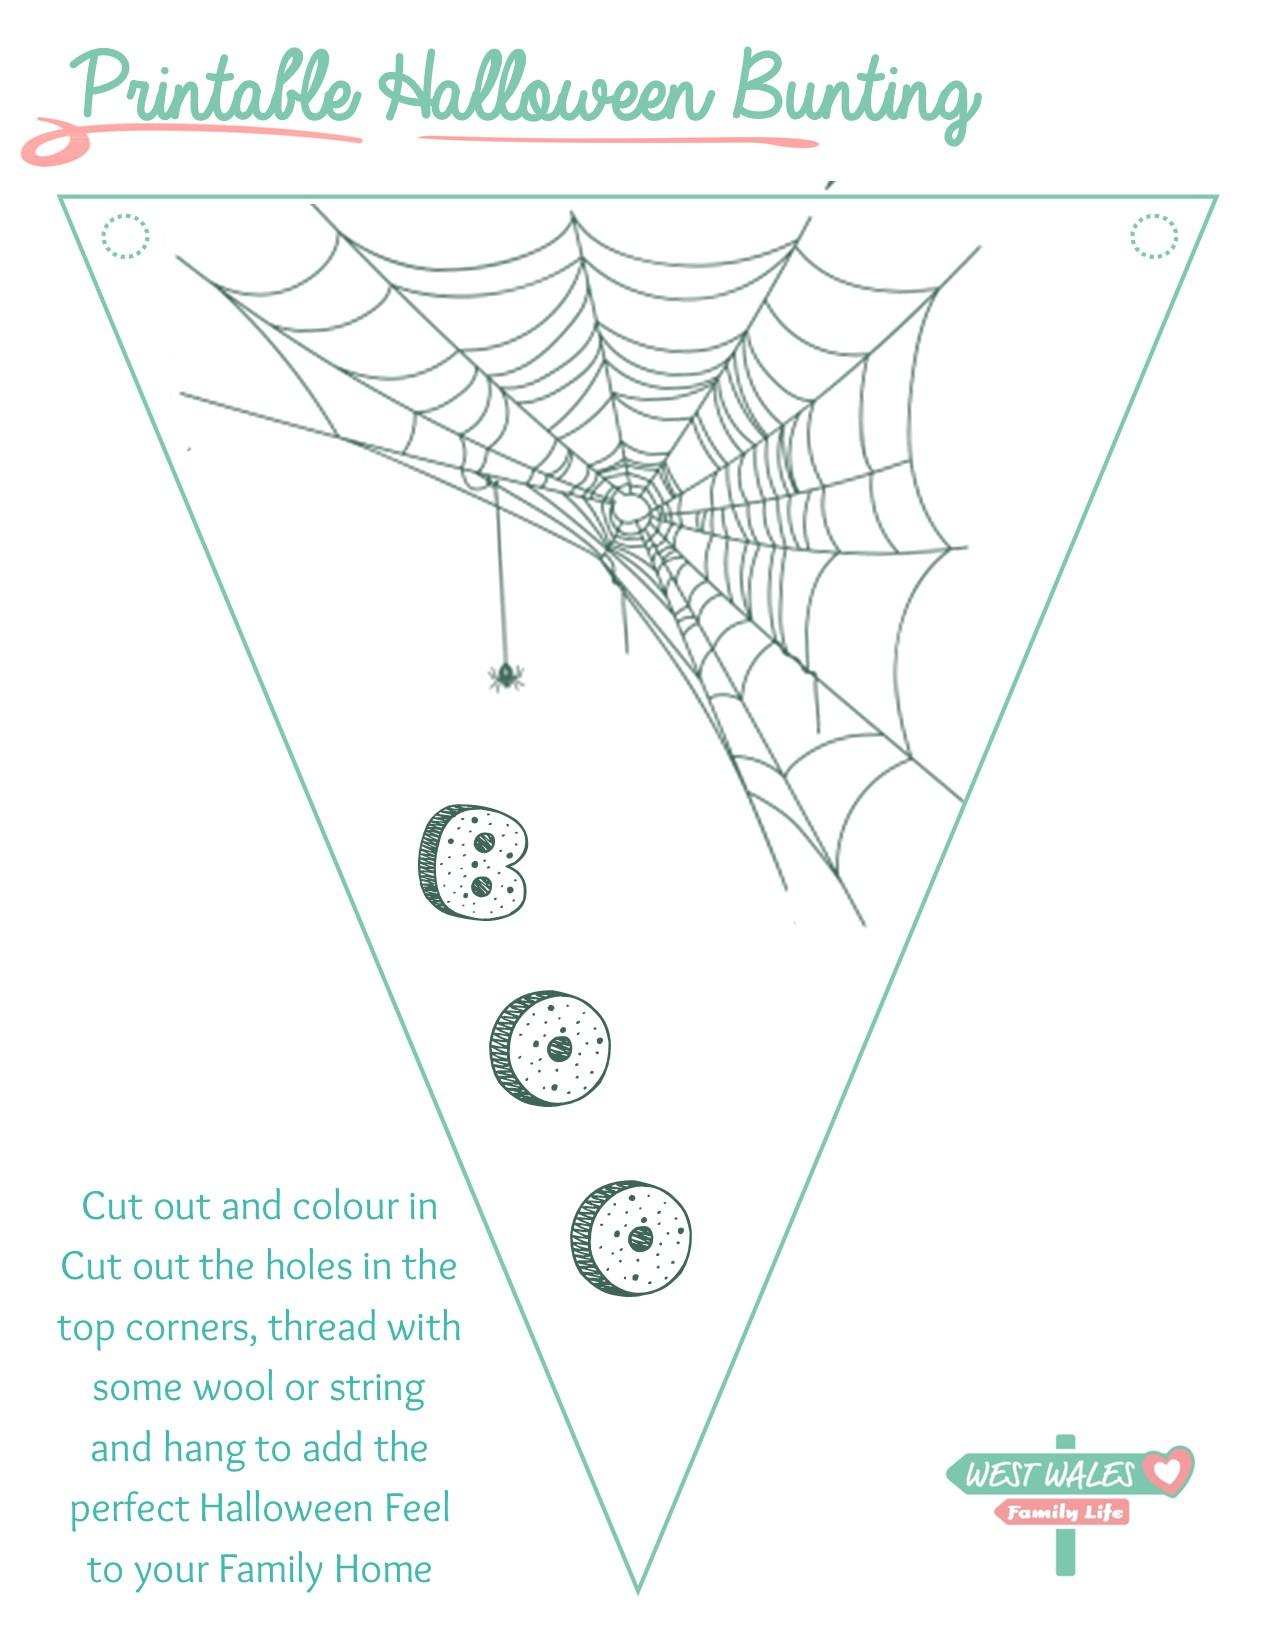 Printable Halloween Bunting 2